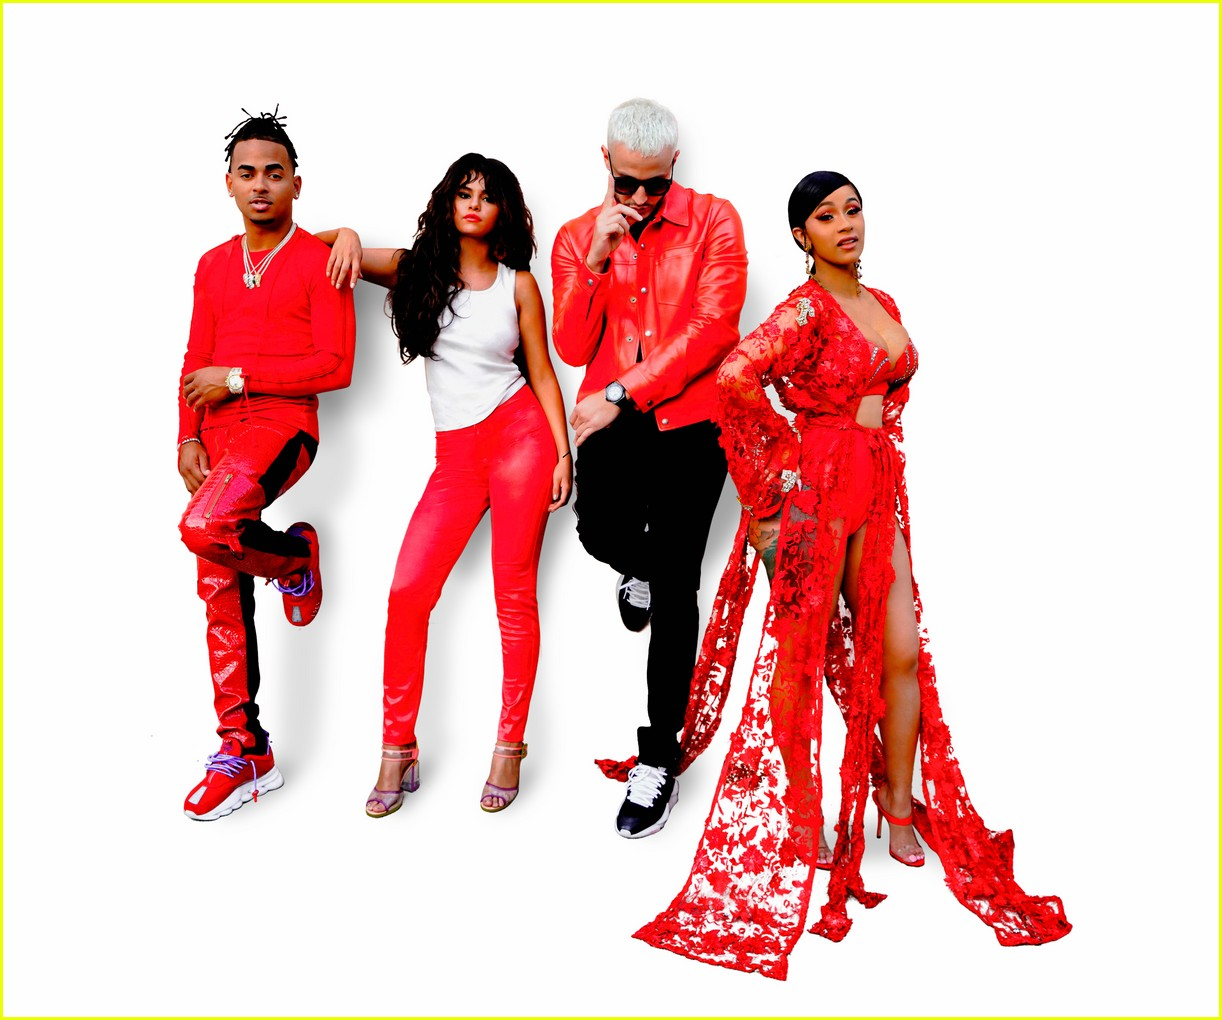 Salena Gomez Taki Taki Song Download: DJ Snake Ft. Ozuna, Cardi B & Selena Gomez: 'Taki Taki